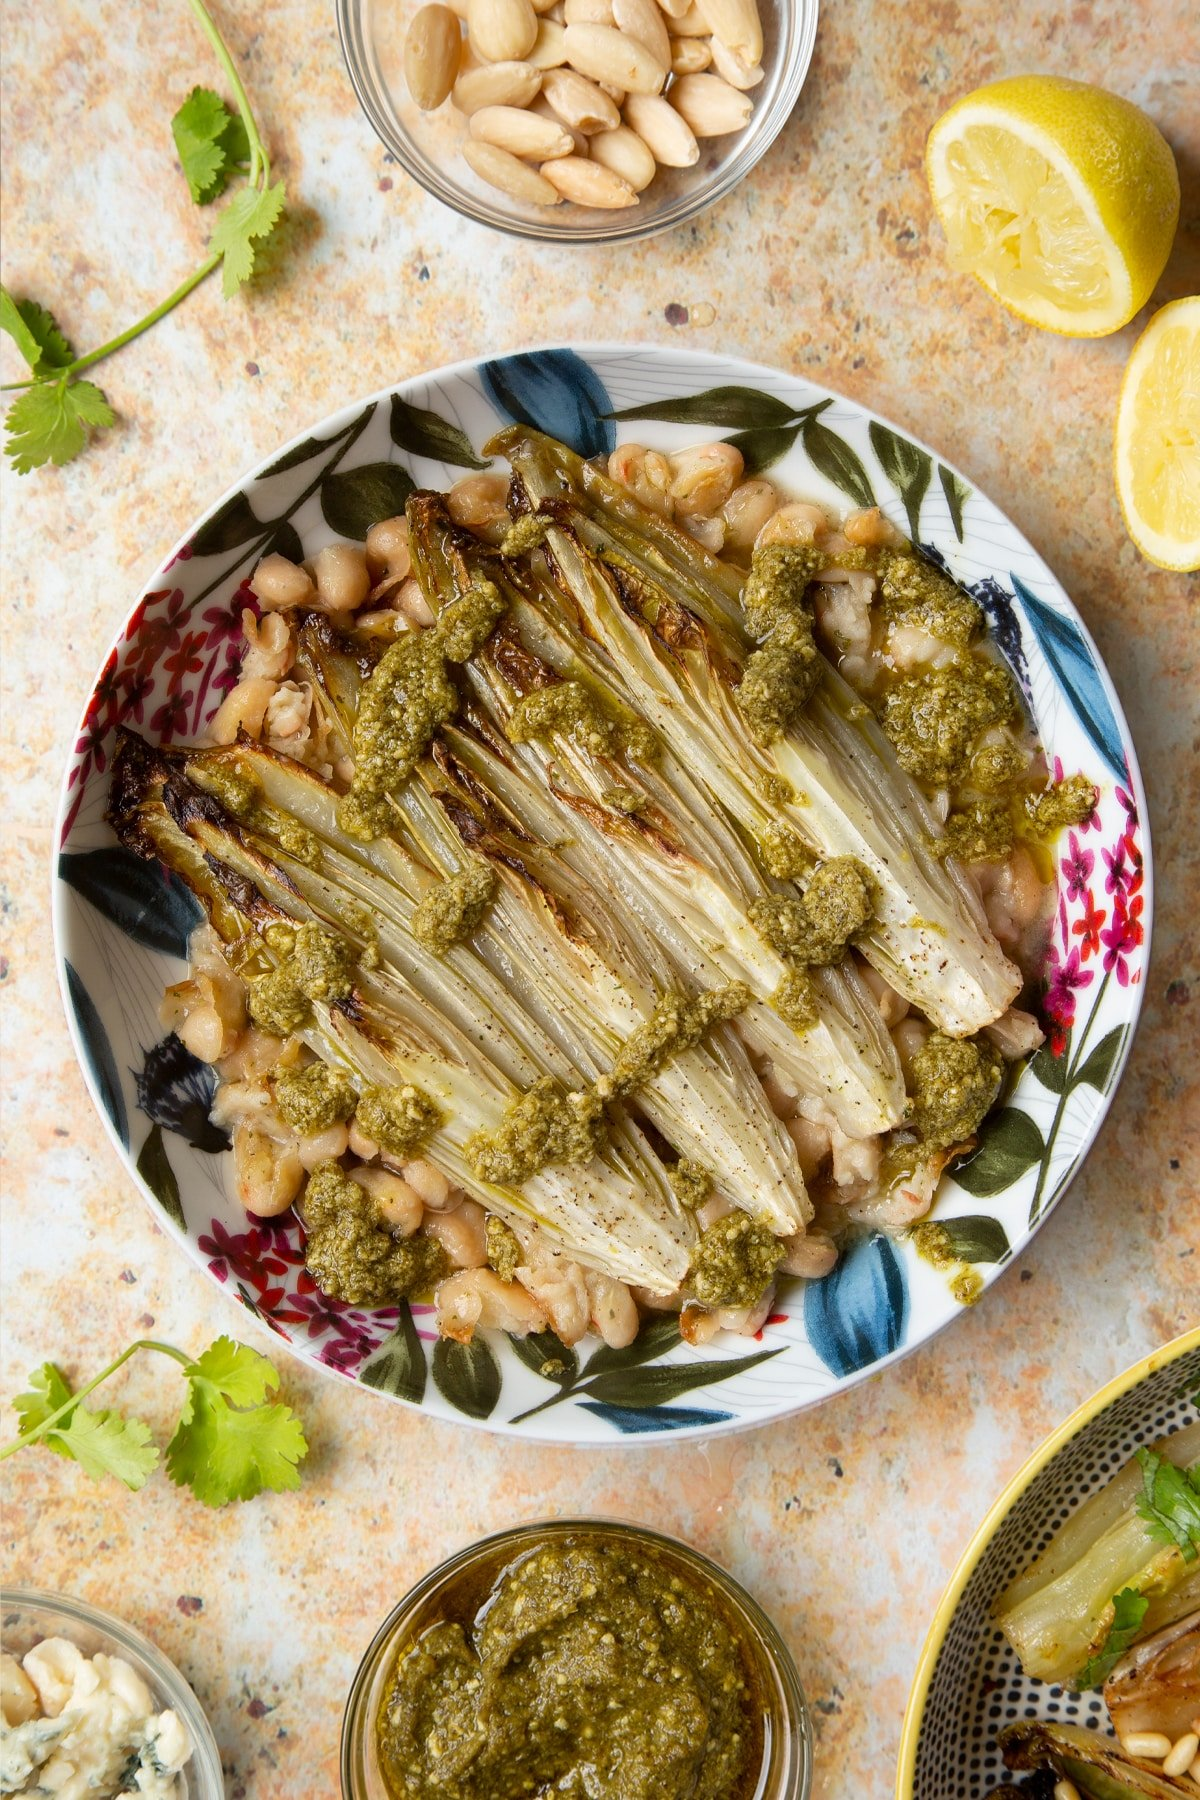 Braised chicory in a bowl with cannellini beans and pesto.